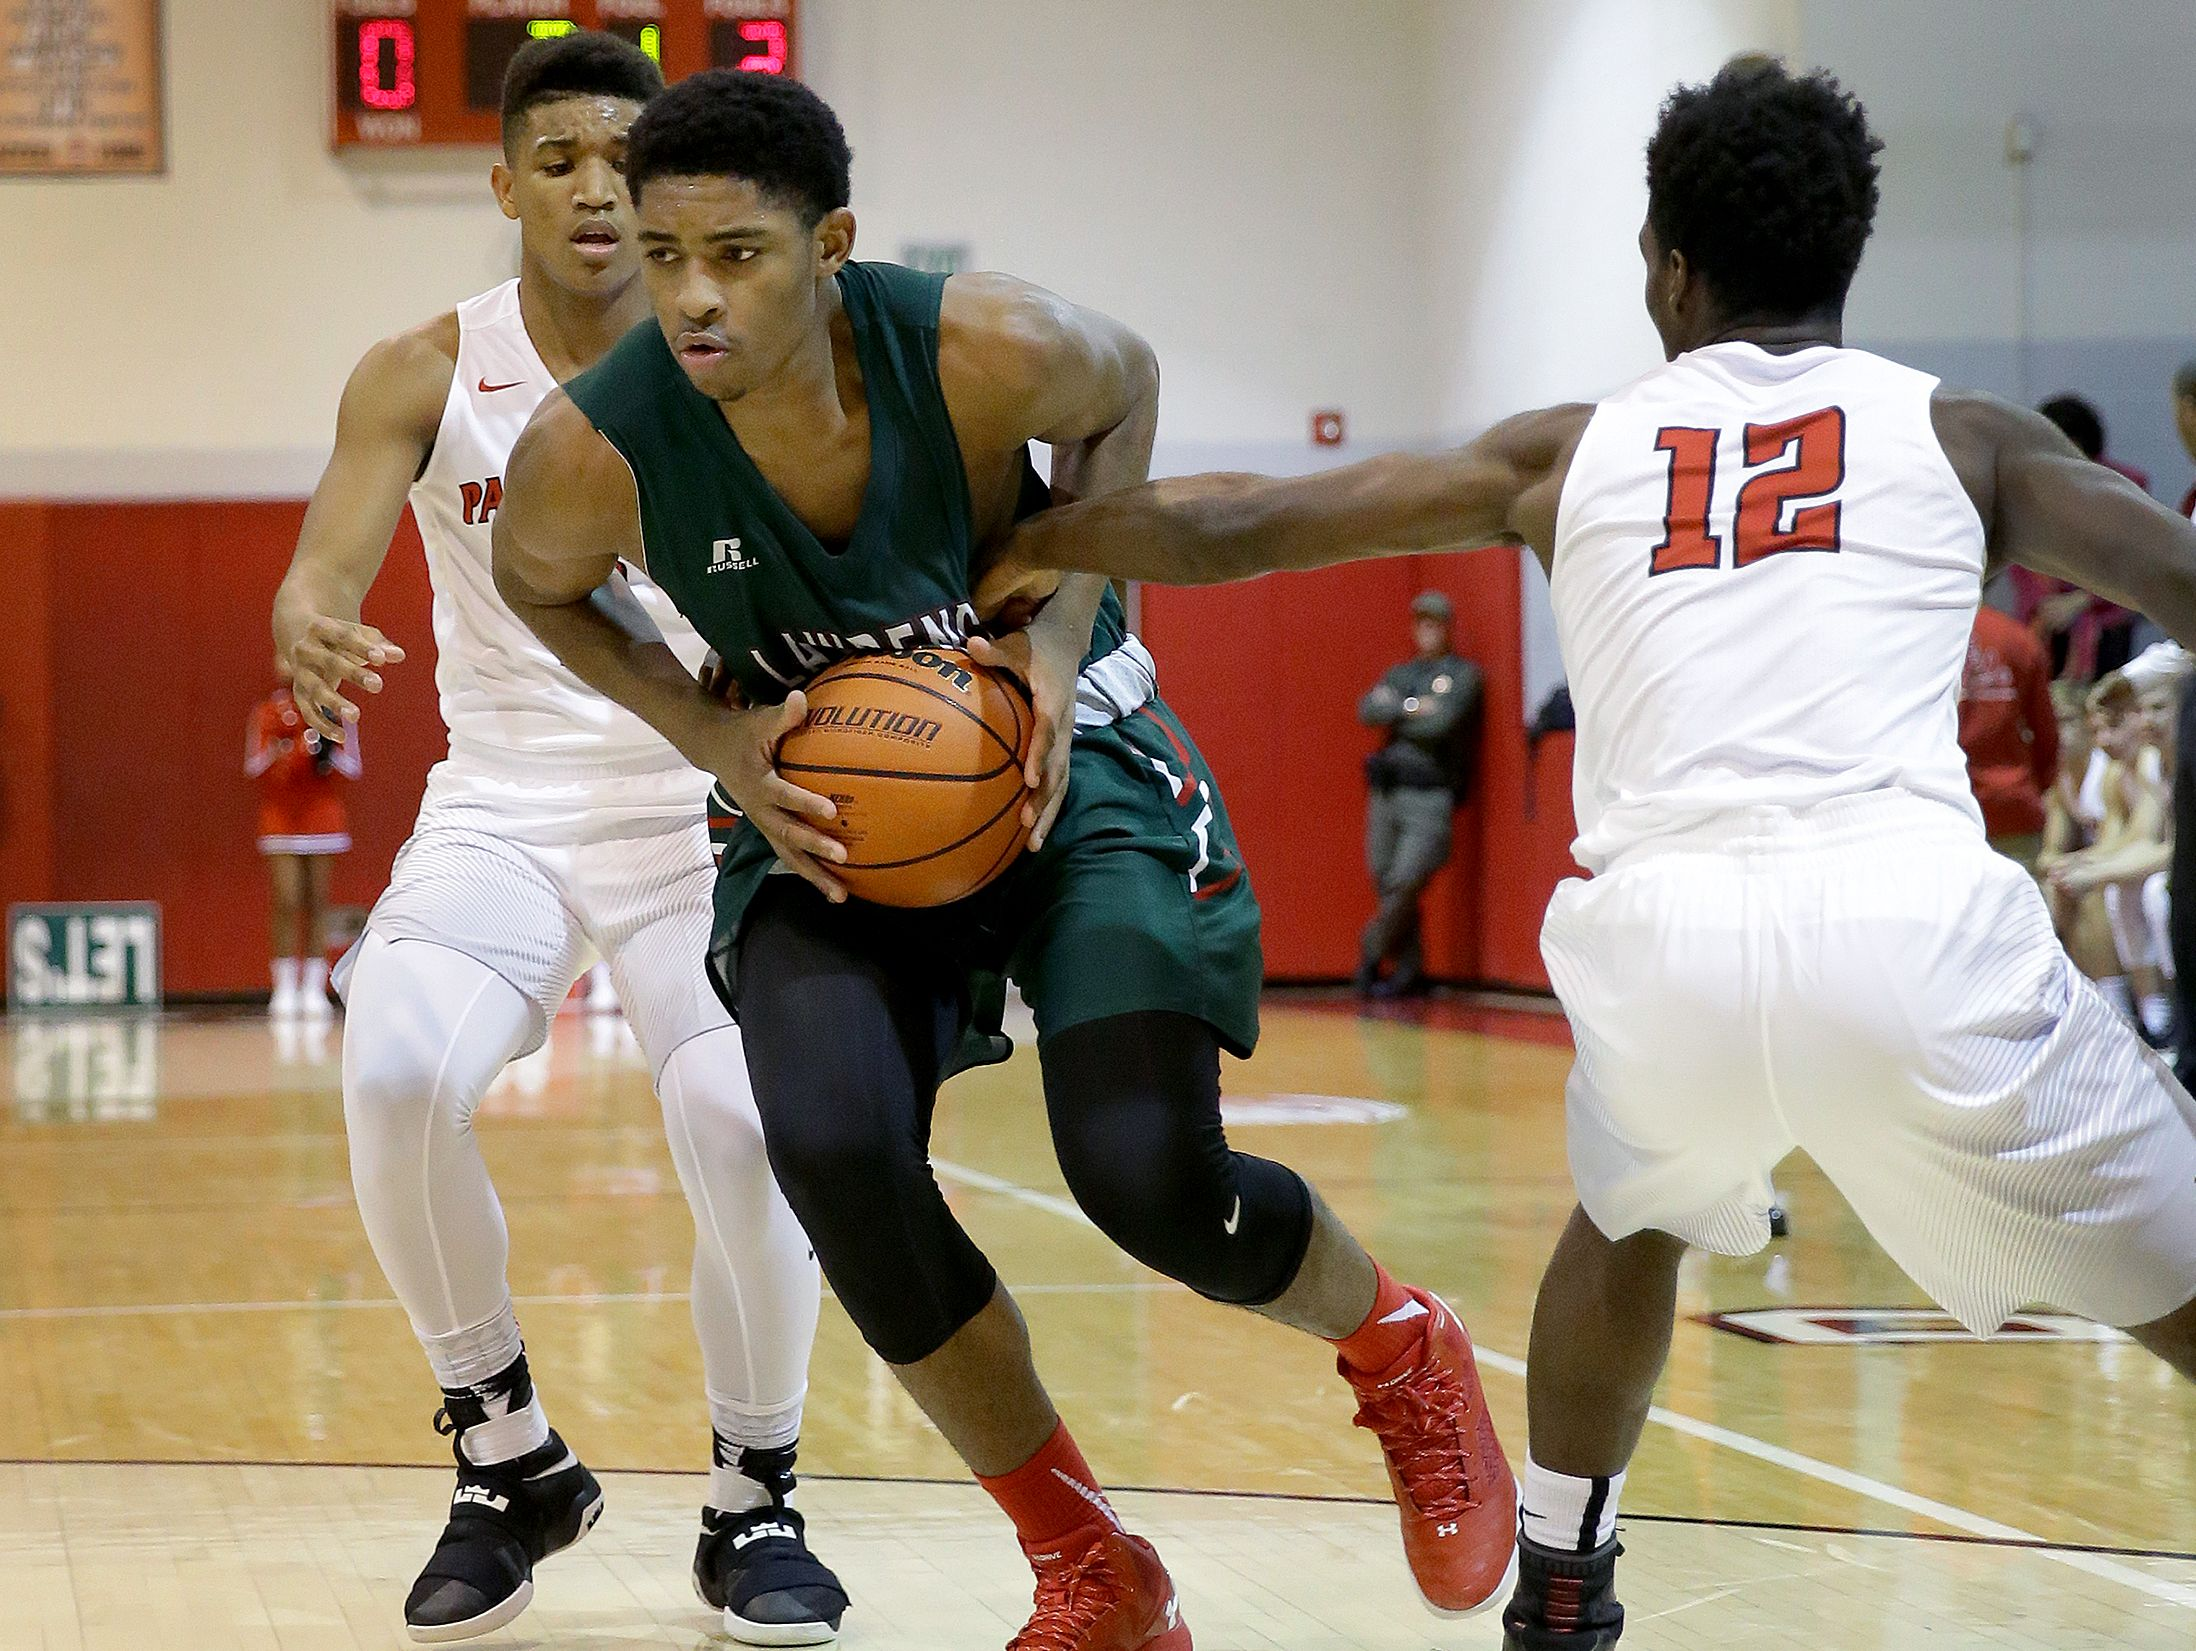 FILE -- Lawrence North Wildcats Kevin Easley (34) is fouled by Park Tudor Panthers Brent Brimmage (12) in the second half of their game Tuesday, November 29, 2016, evening at Park Tudor High School. The Lawrence North Wildcats defeated the Park Tudor Panthers 47-35.